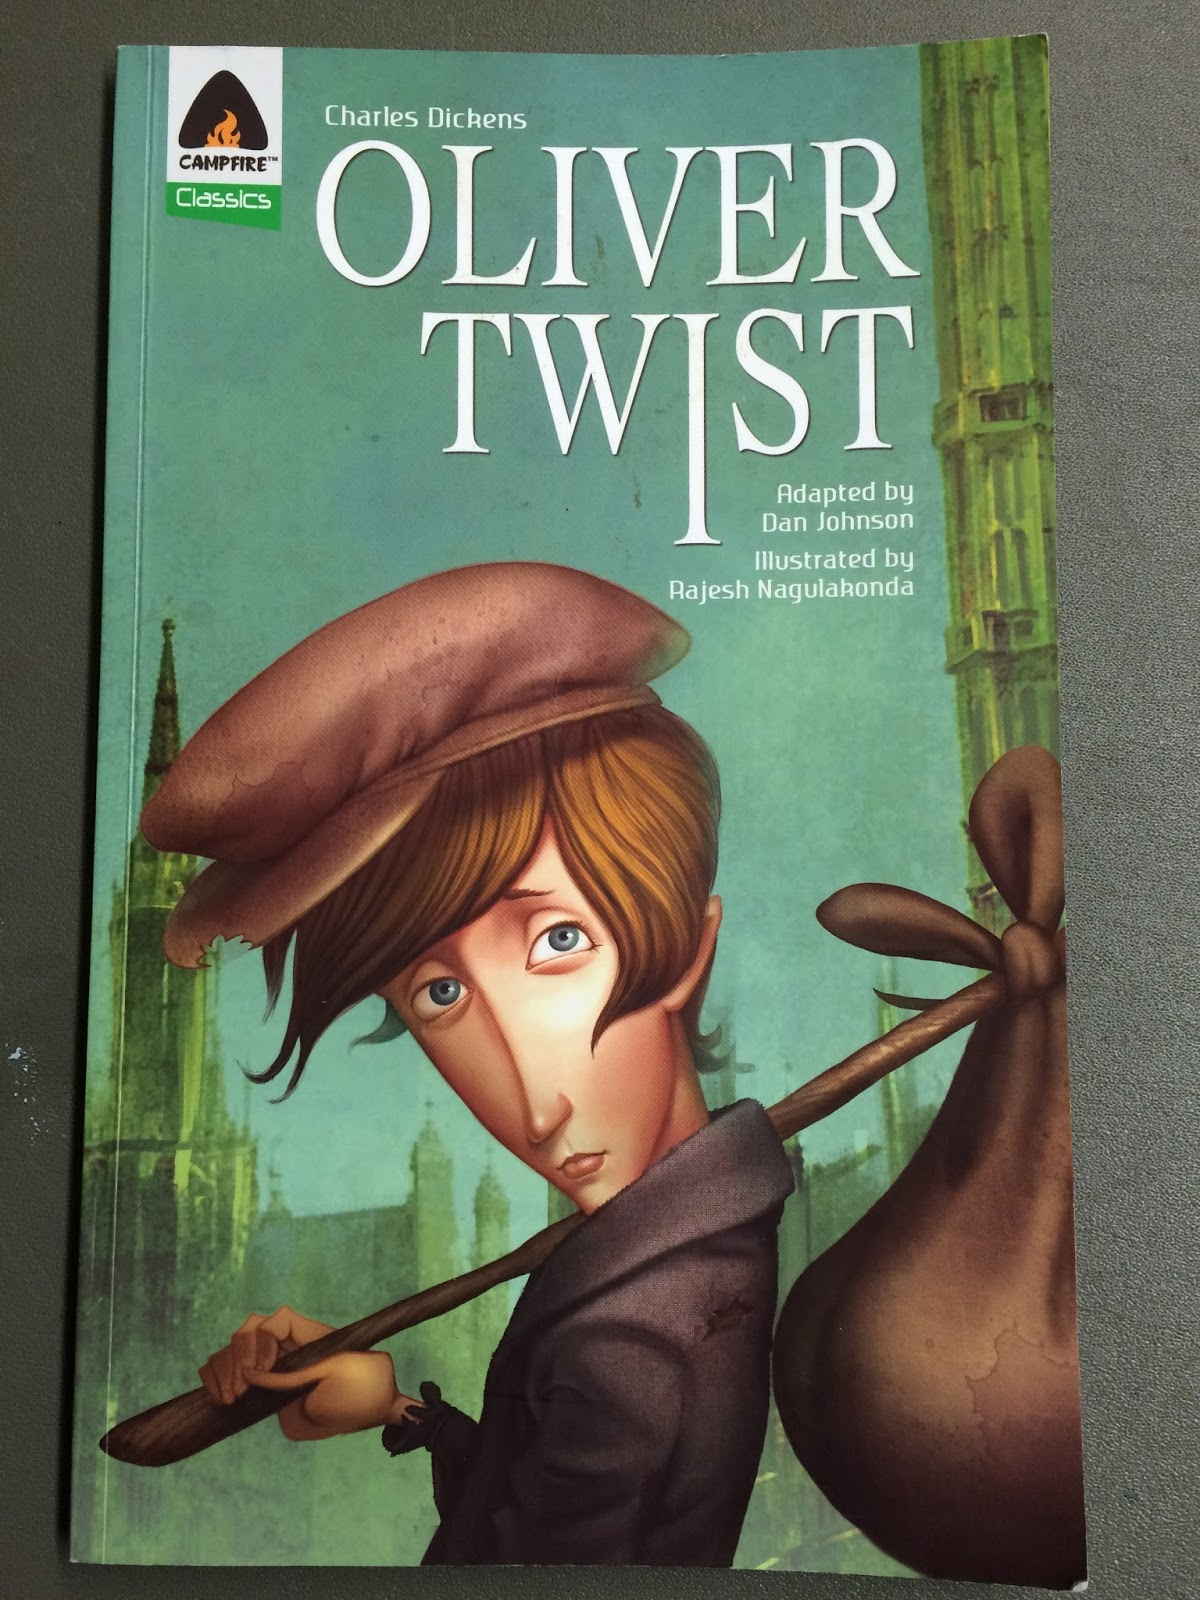 oliver twist jip his story oliver twist a graphic novel we are comparing the main character oliver twist to jip a young boy in the katherine patterson book jip his story